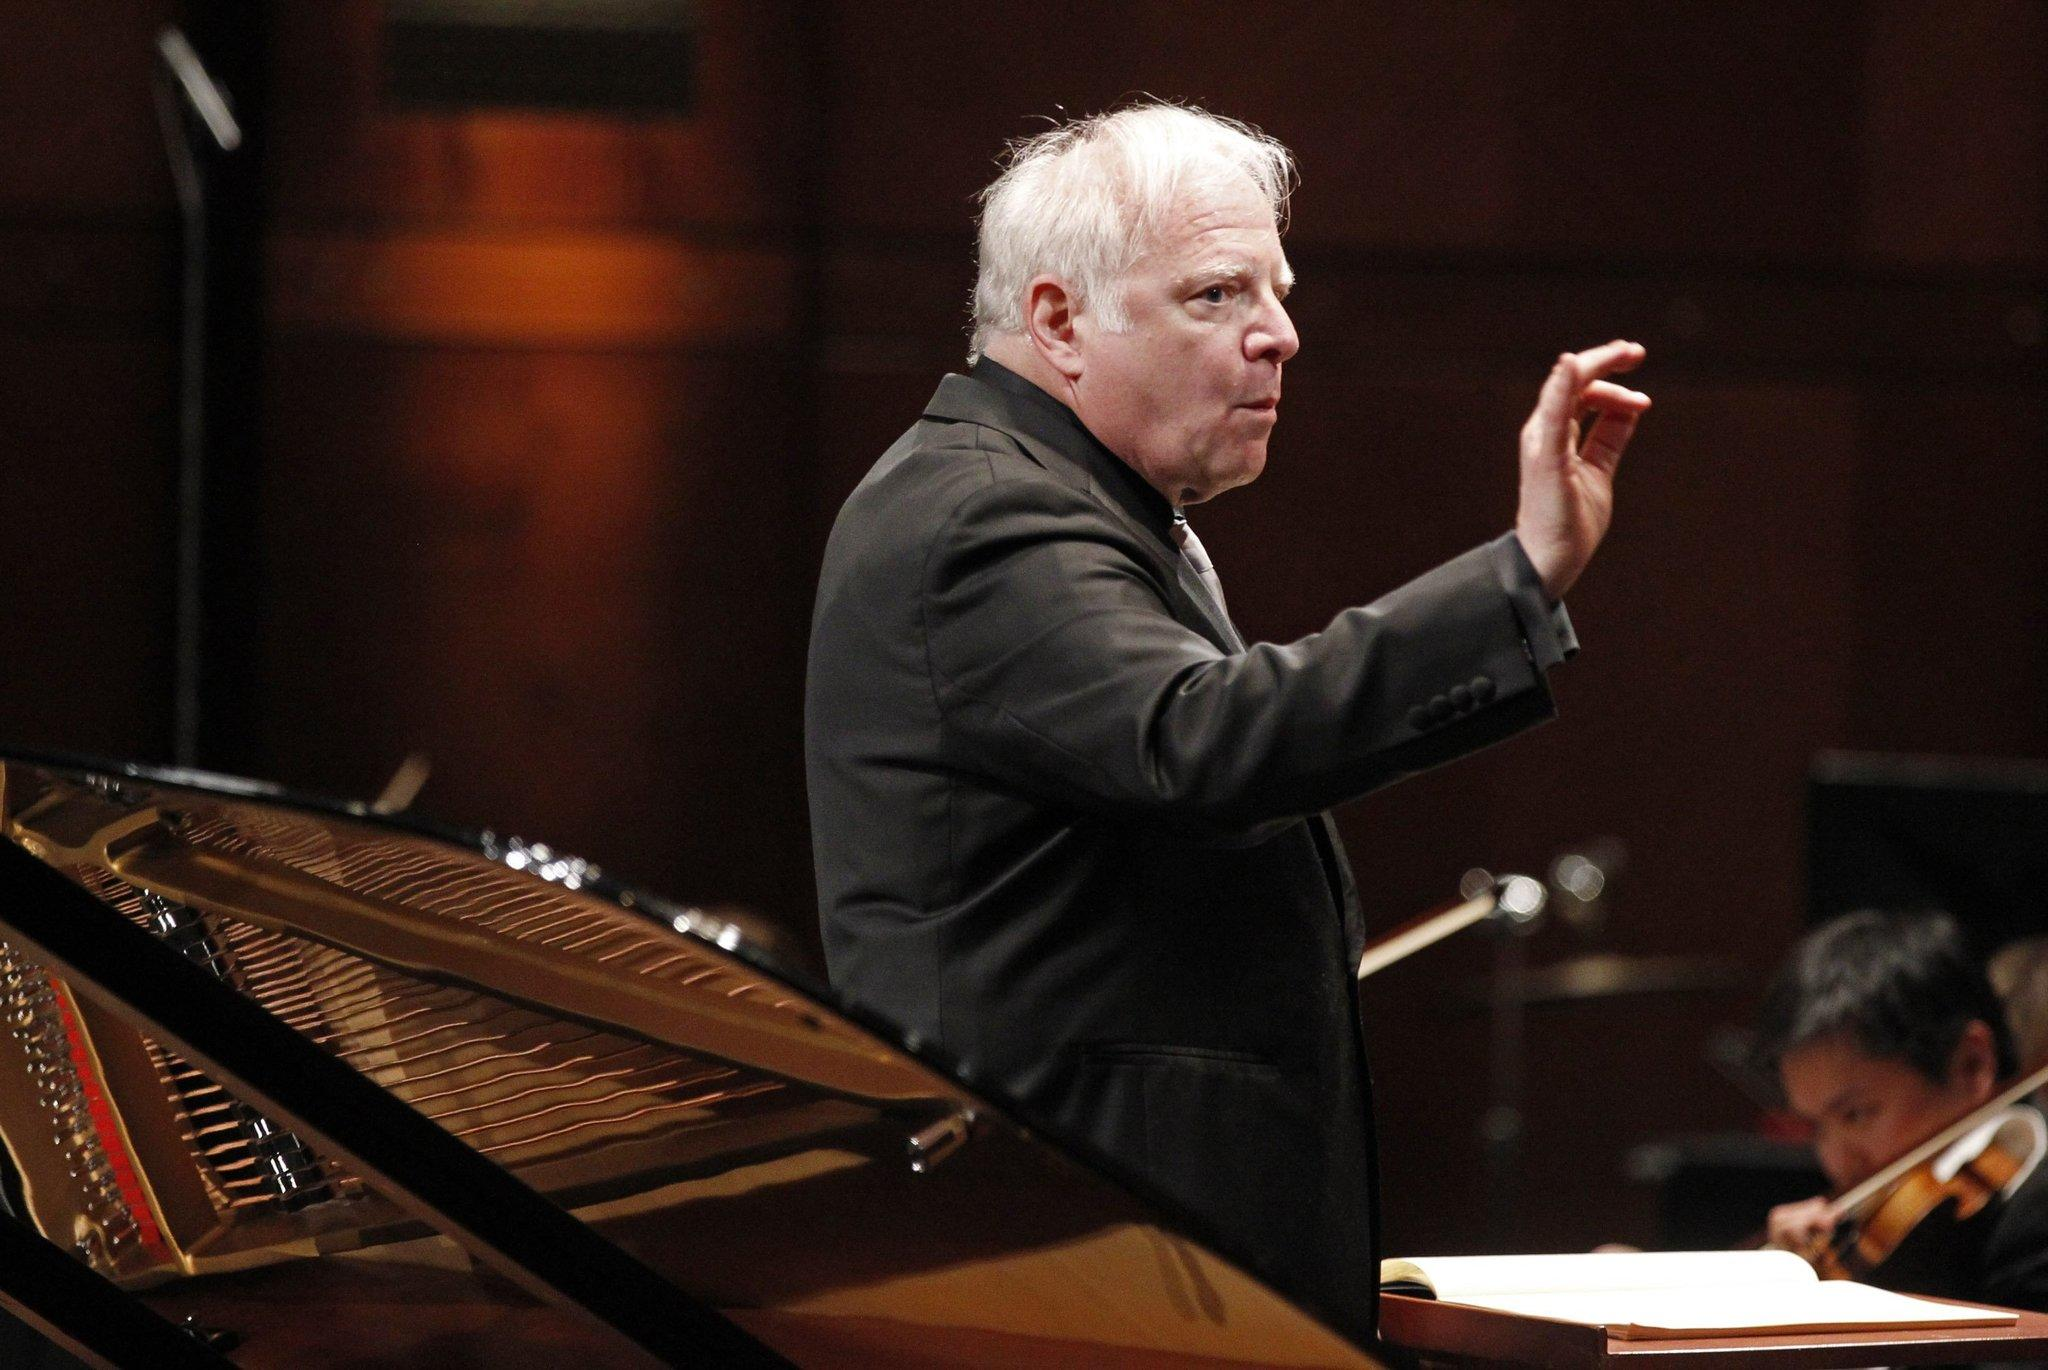 Conductor Leonard Slatkin directs the Fort Worth Symphony Orchestra.